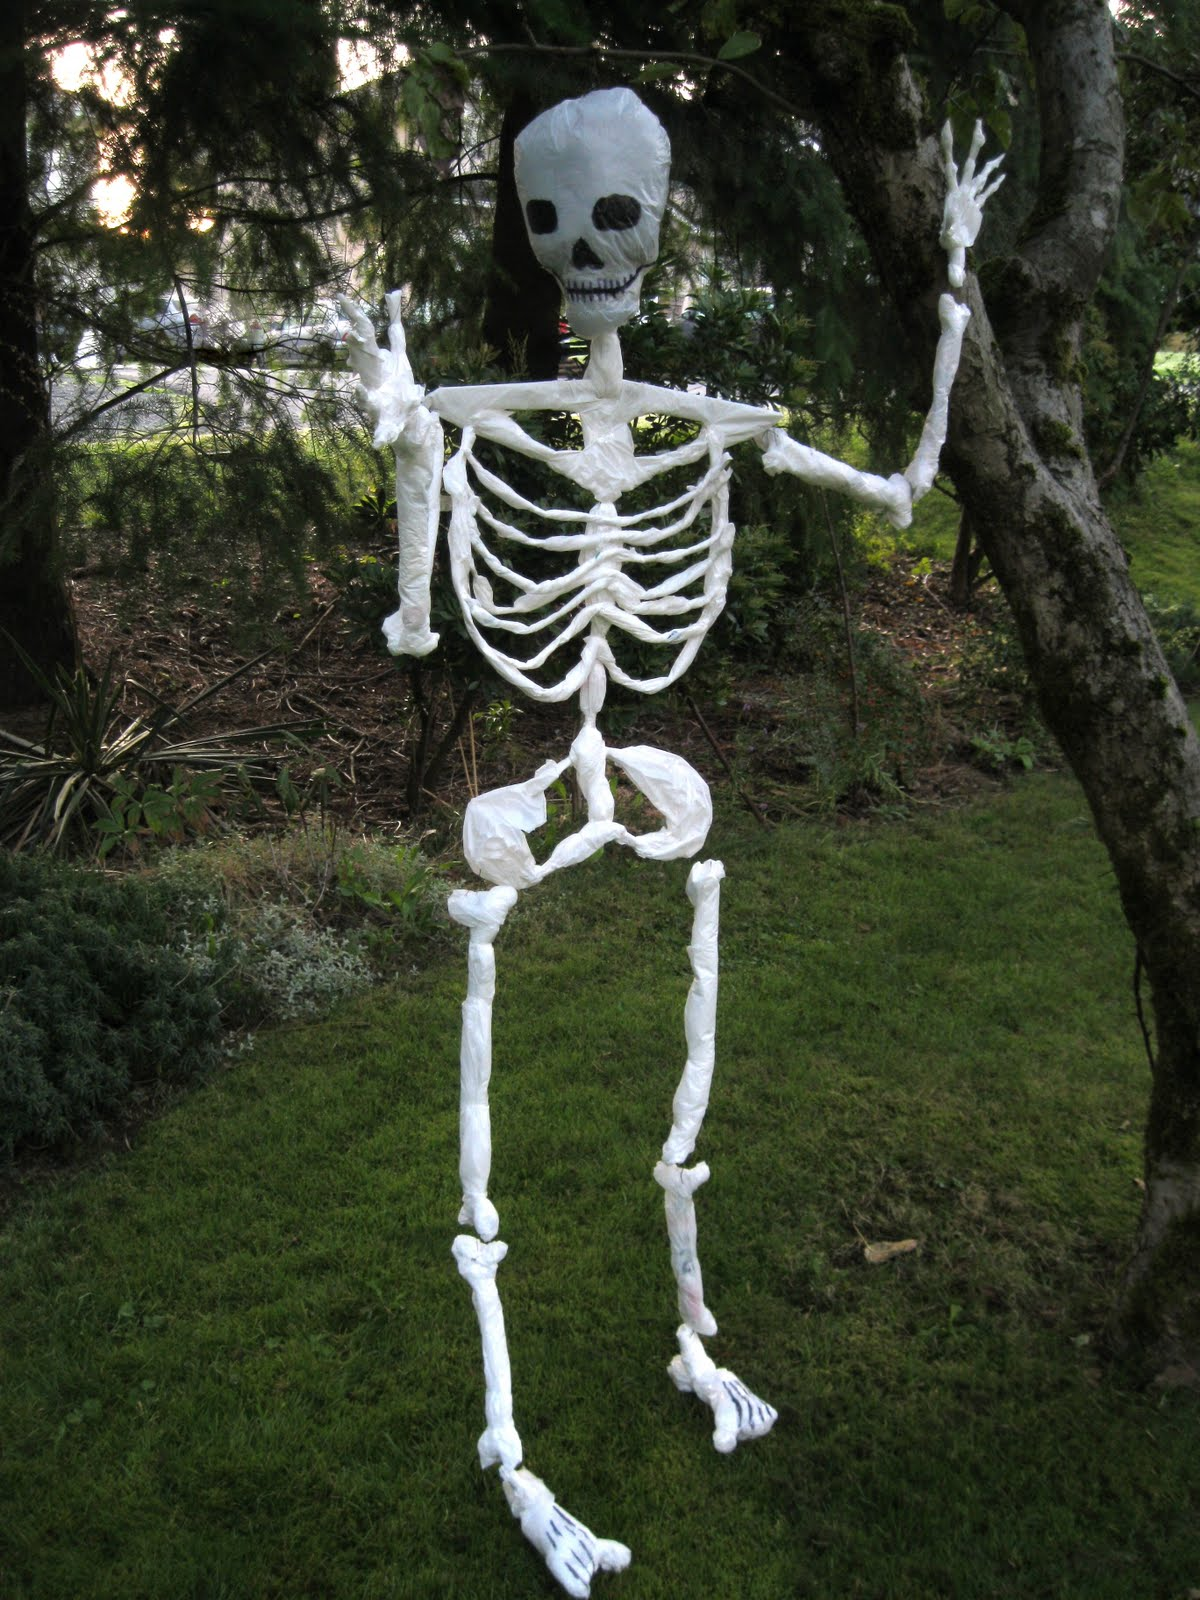 Homemade halloween decorations - Halloween Skeleton Made Of Plastic Shopping Bags